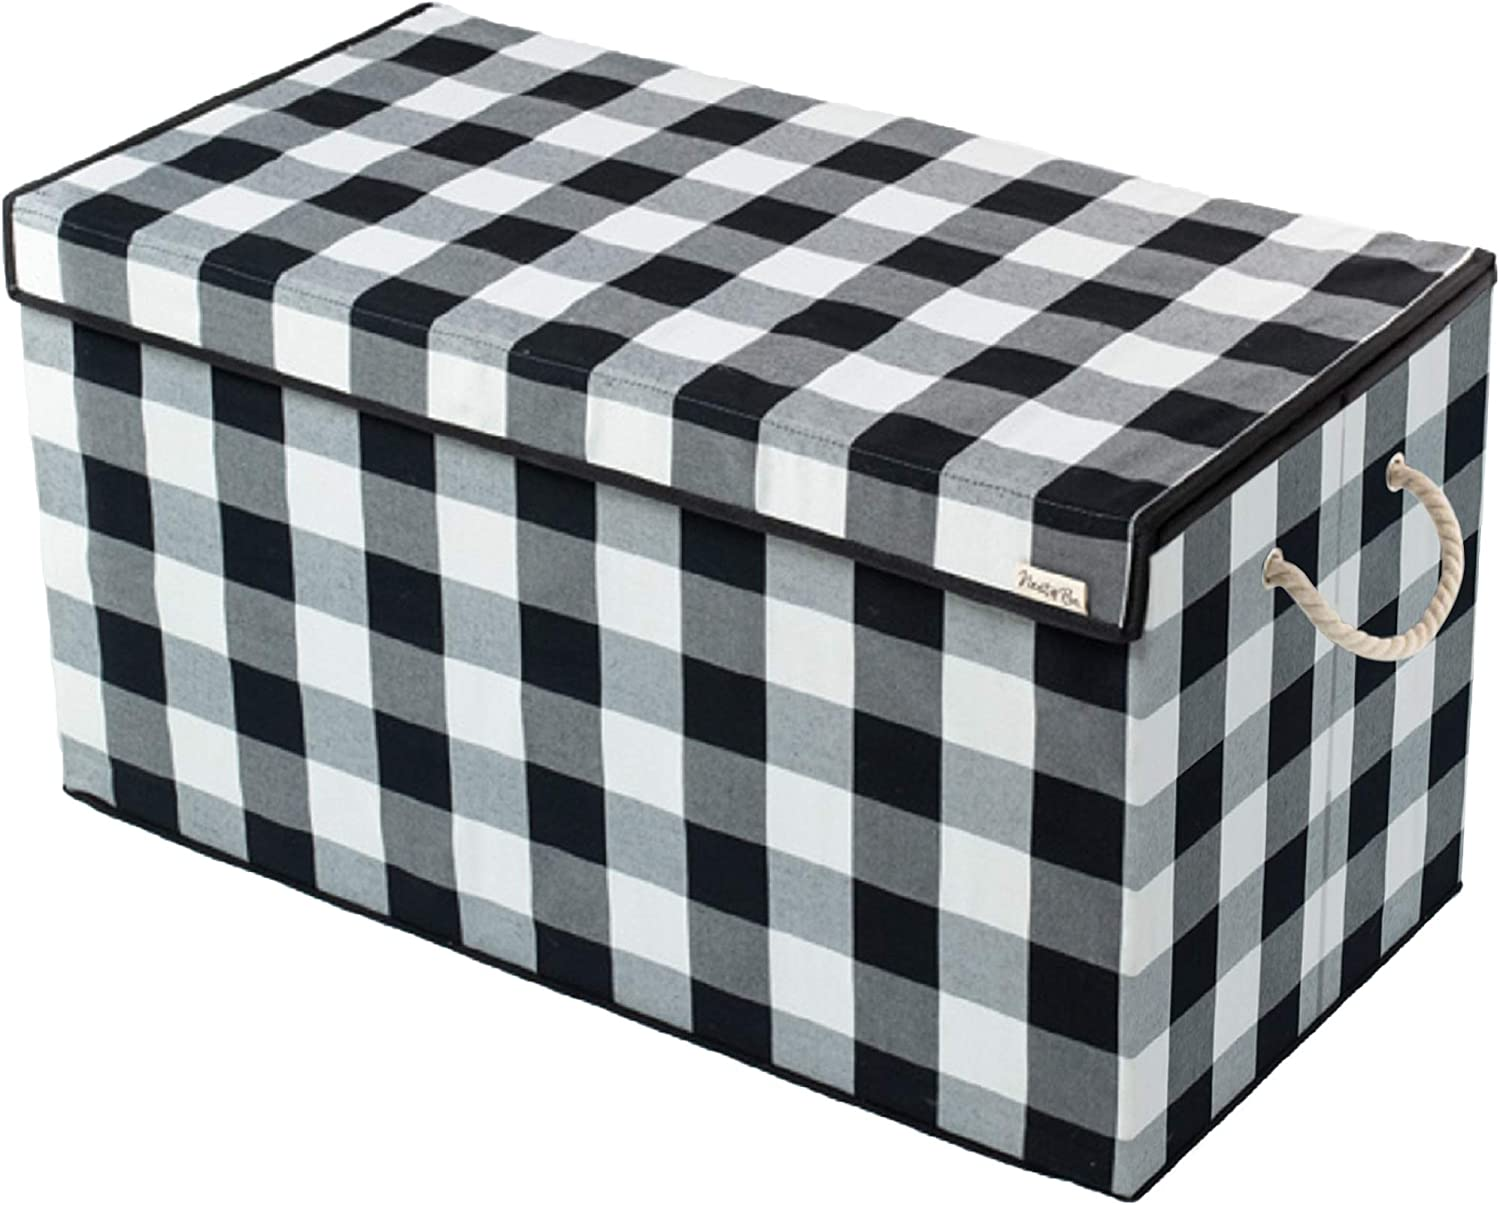 Nest & Be X-Large 30-inch Toy Storage Chest - Collapsible, Buffalo Plaid, Durable Sides w/Divider, and Attached, Flip-Top Lid. For Home Organization, Nursery, Kids playroom, Pet items, Closet: Home Improvement